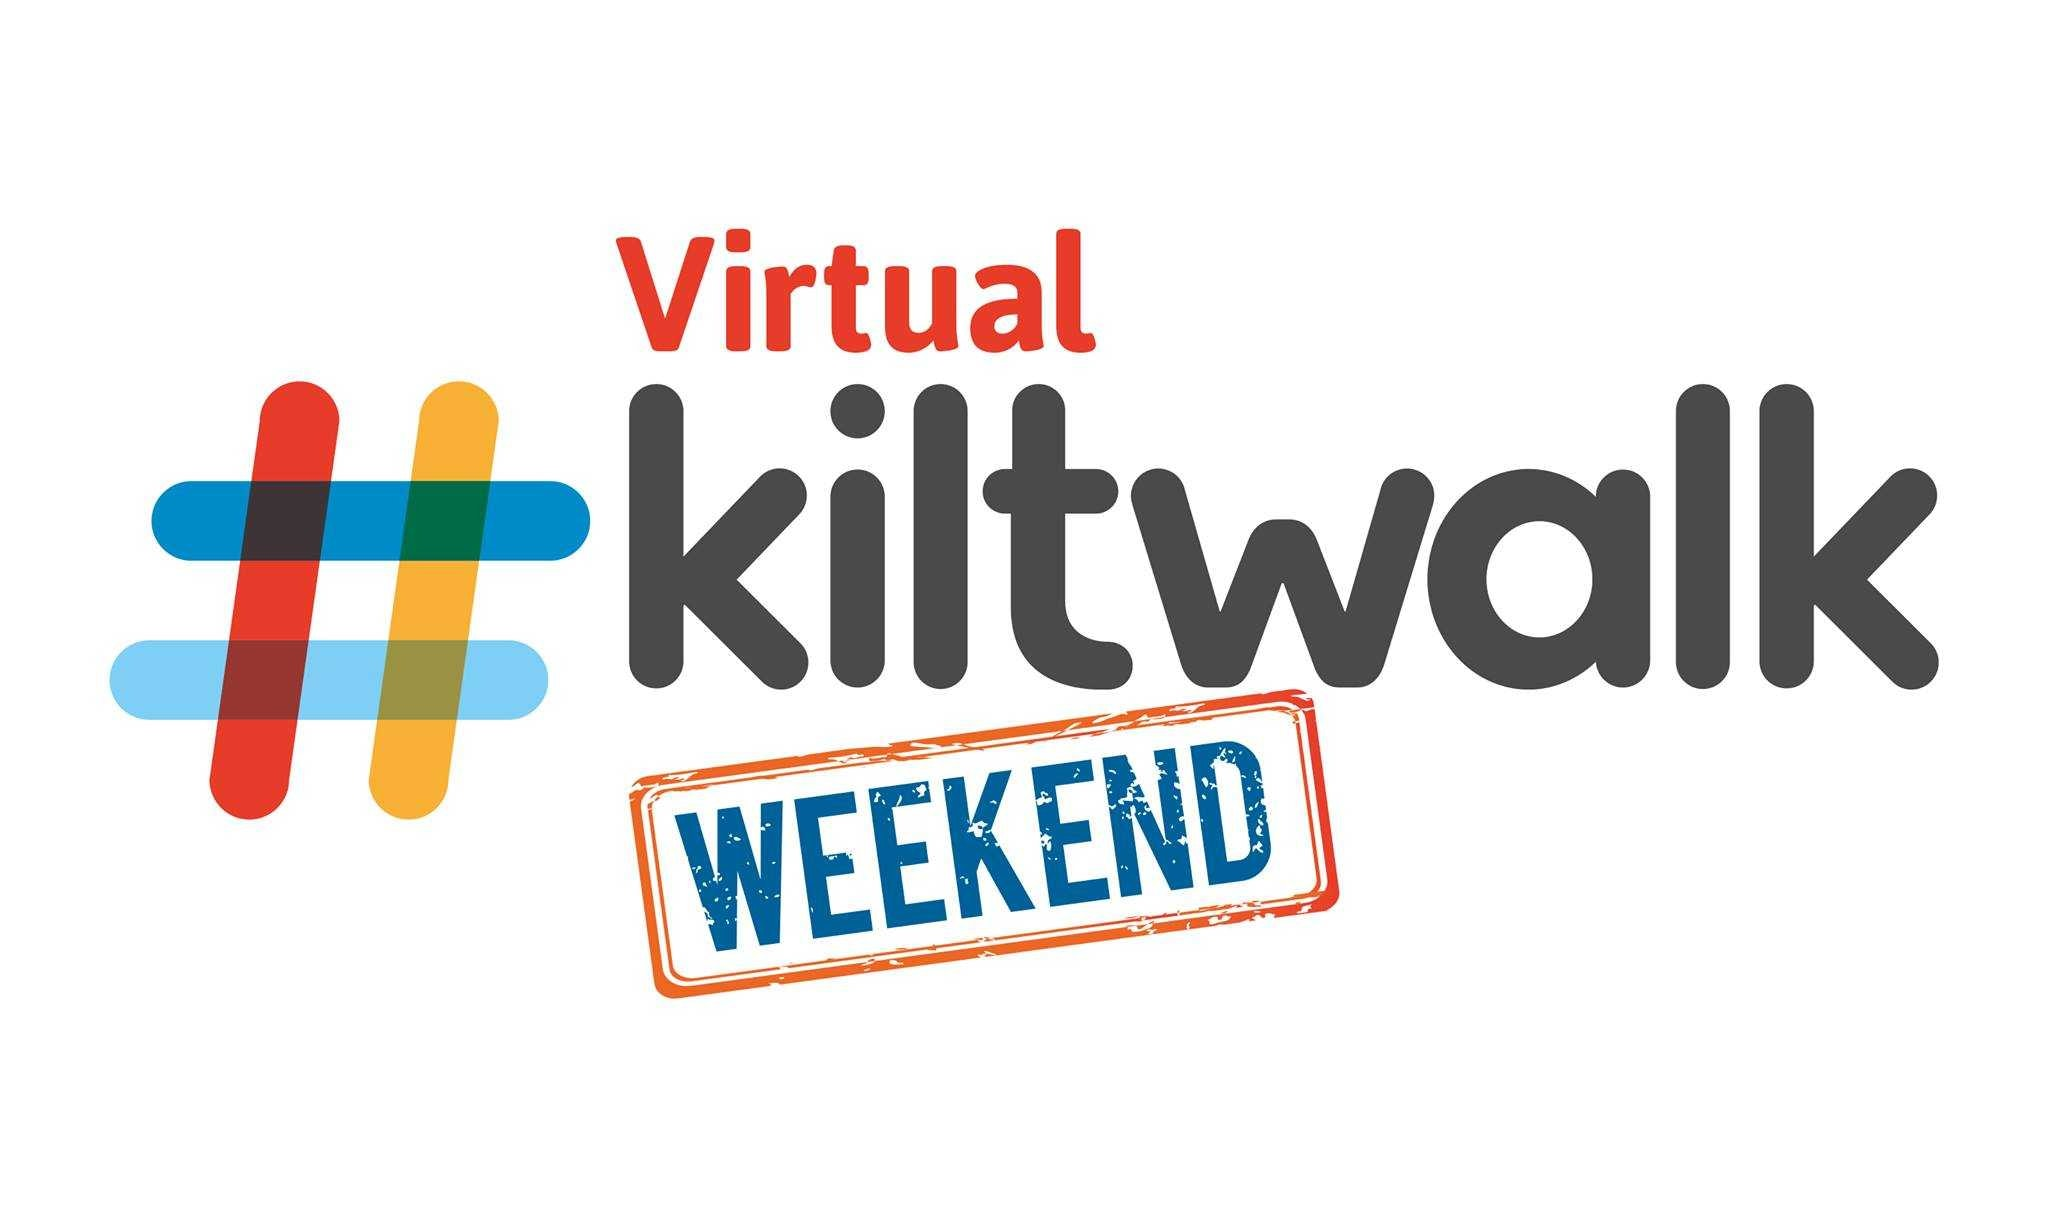 Virtual Kiltwalk